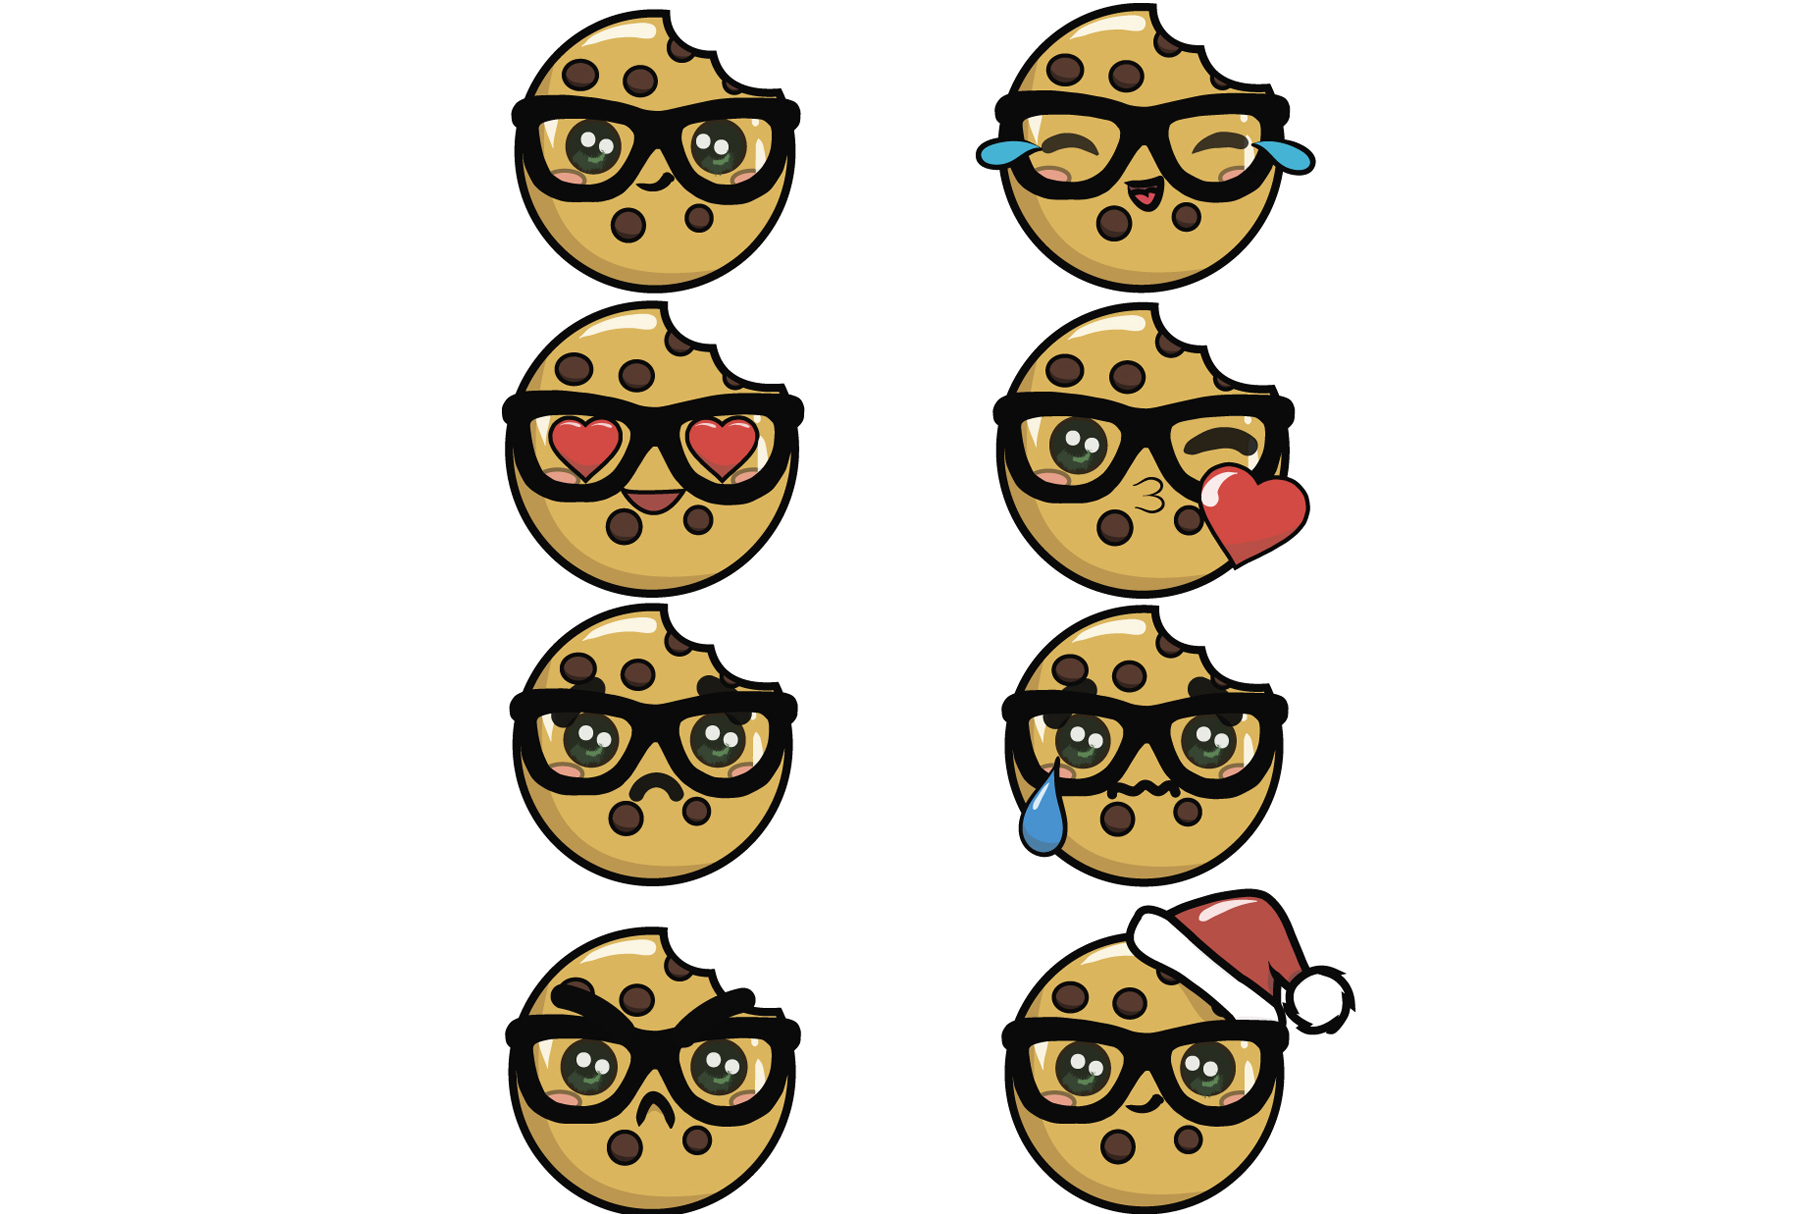 Download Free Cookies Emoji Graphic By Sasha Brazhnik Creative Fabrica for Cricut Explore, Silhouette and other cutting machines.